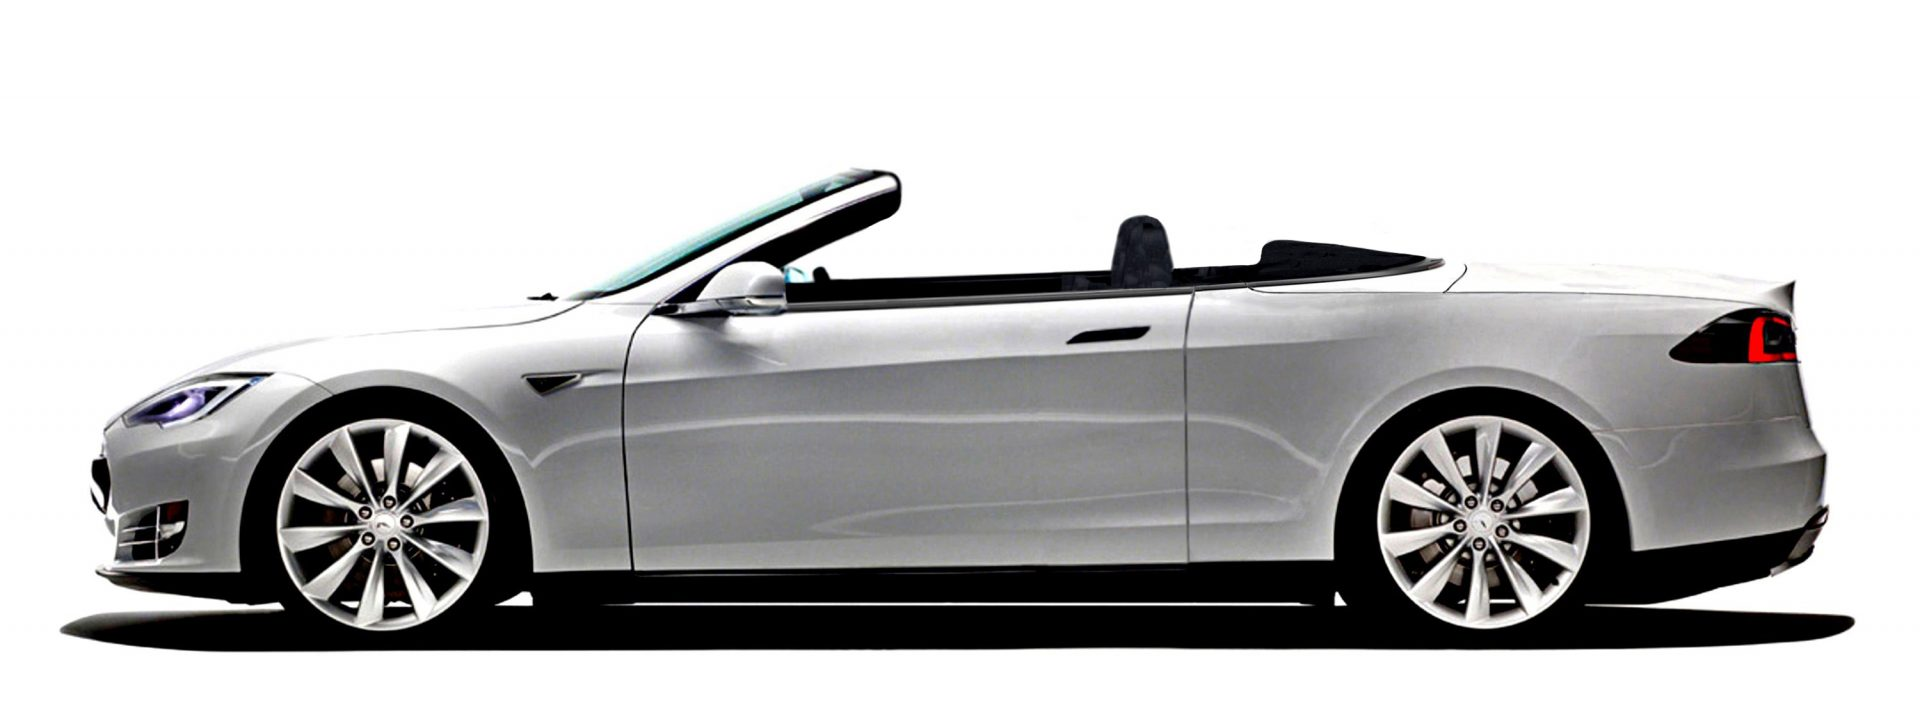 Tesla Model S Custom >> Tesla S 2 door Convertible